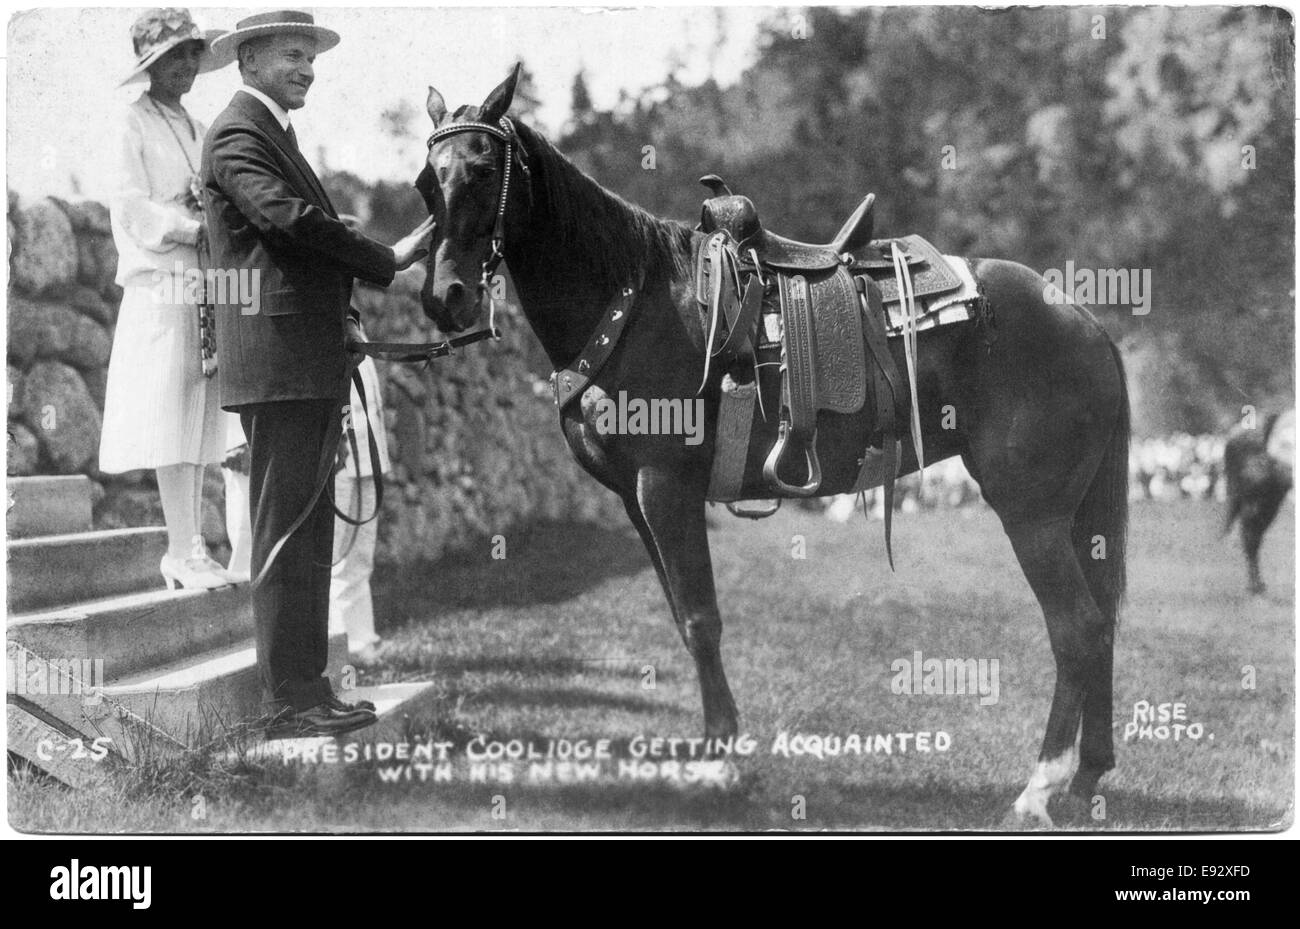 U.S. President Calvin Coolidge with Horse, circa 1925 - Stock Image